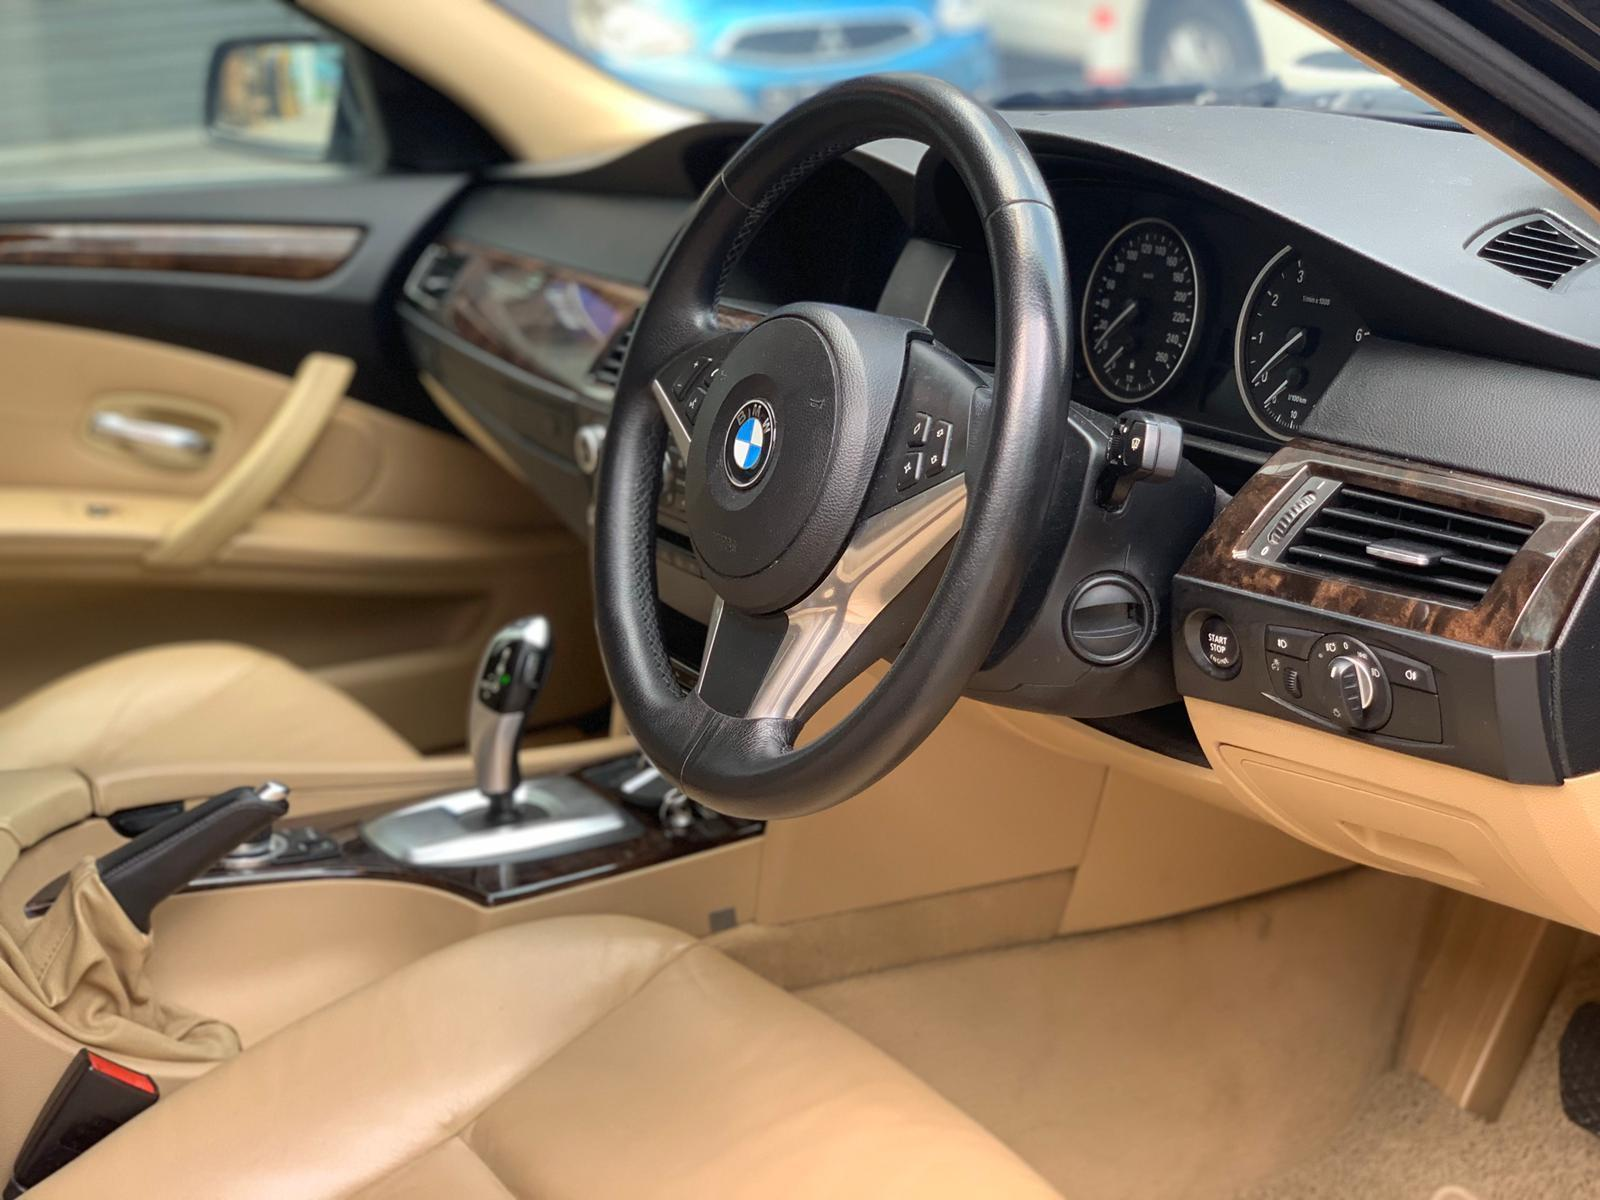 BMW 525i XL Luxury @ Best rates, full servicing provided!